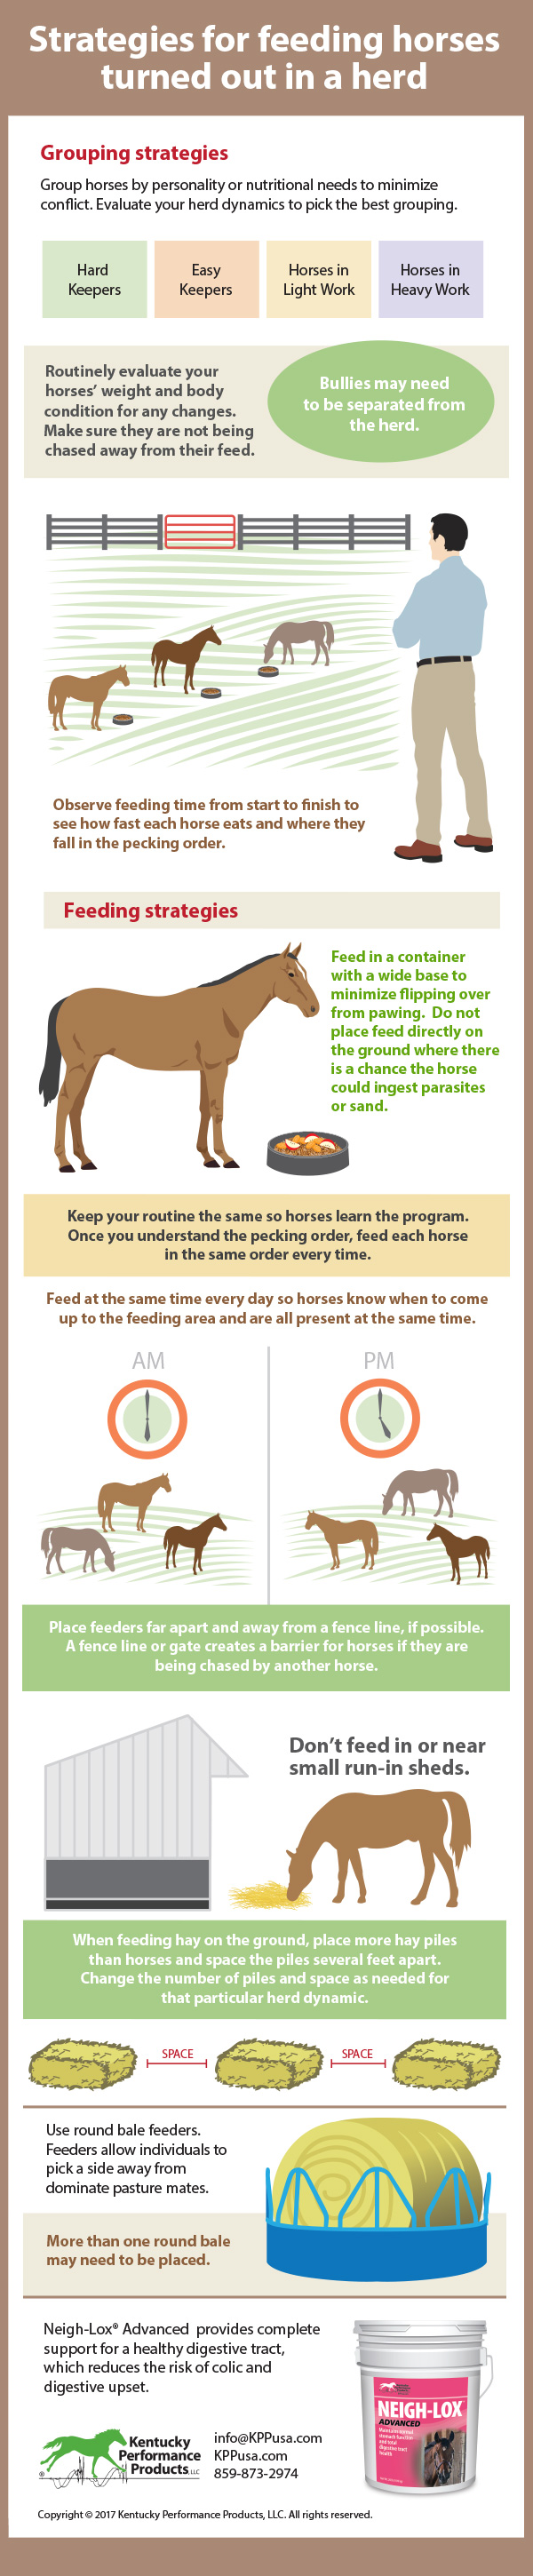 Strategies-for-feeding-horses-turned-out-in-a-herd-17-154